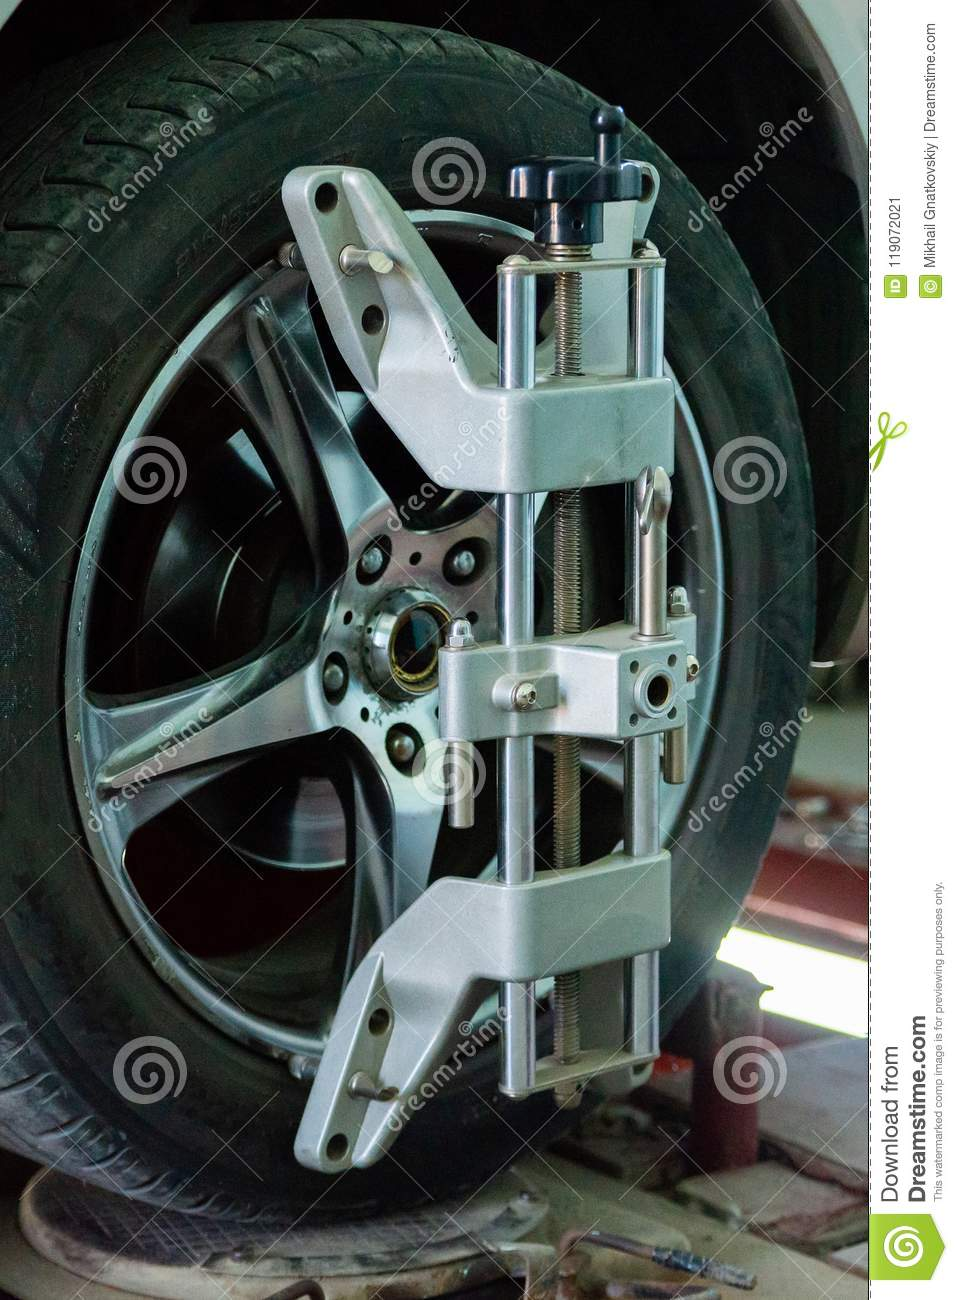 Car On Stand With Sensors On Wheels For Wheels Alignment